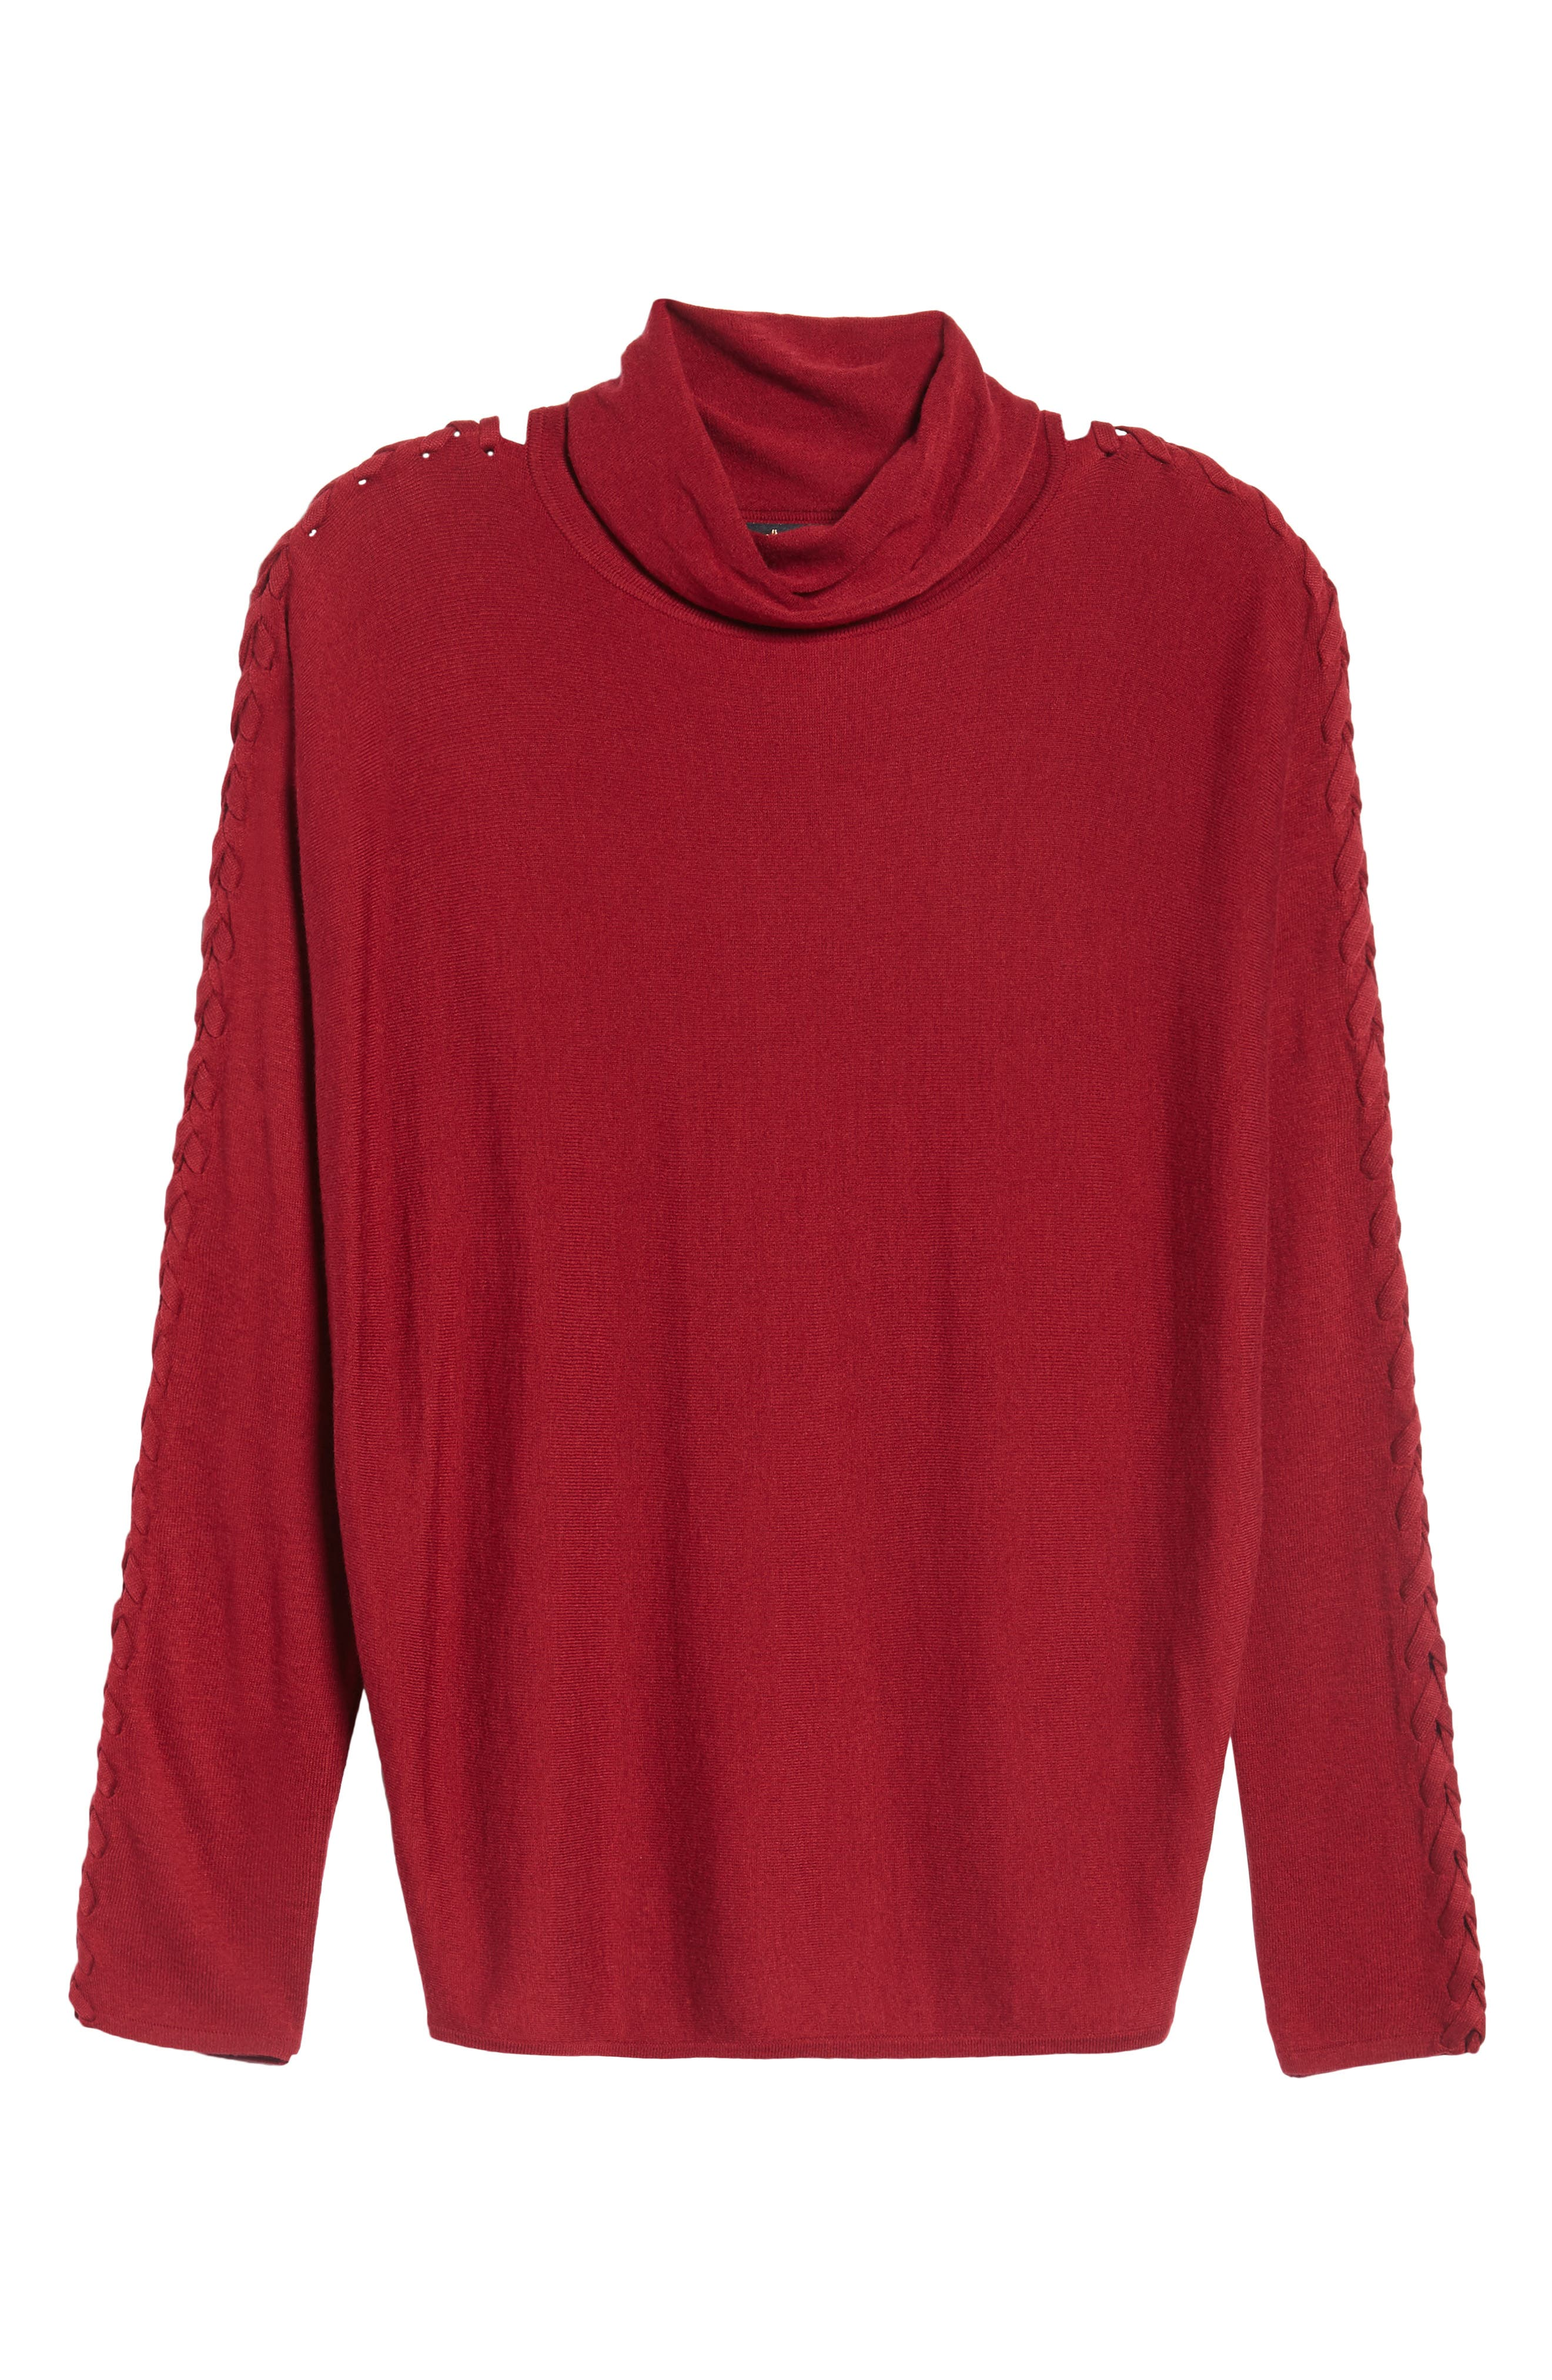 Victoire Turtleneck Sweater,                             Alternate thumbnail 12, color,